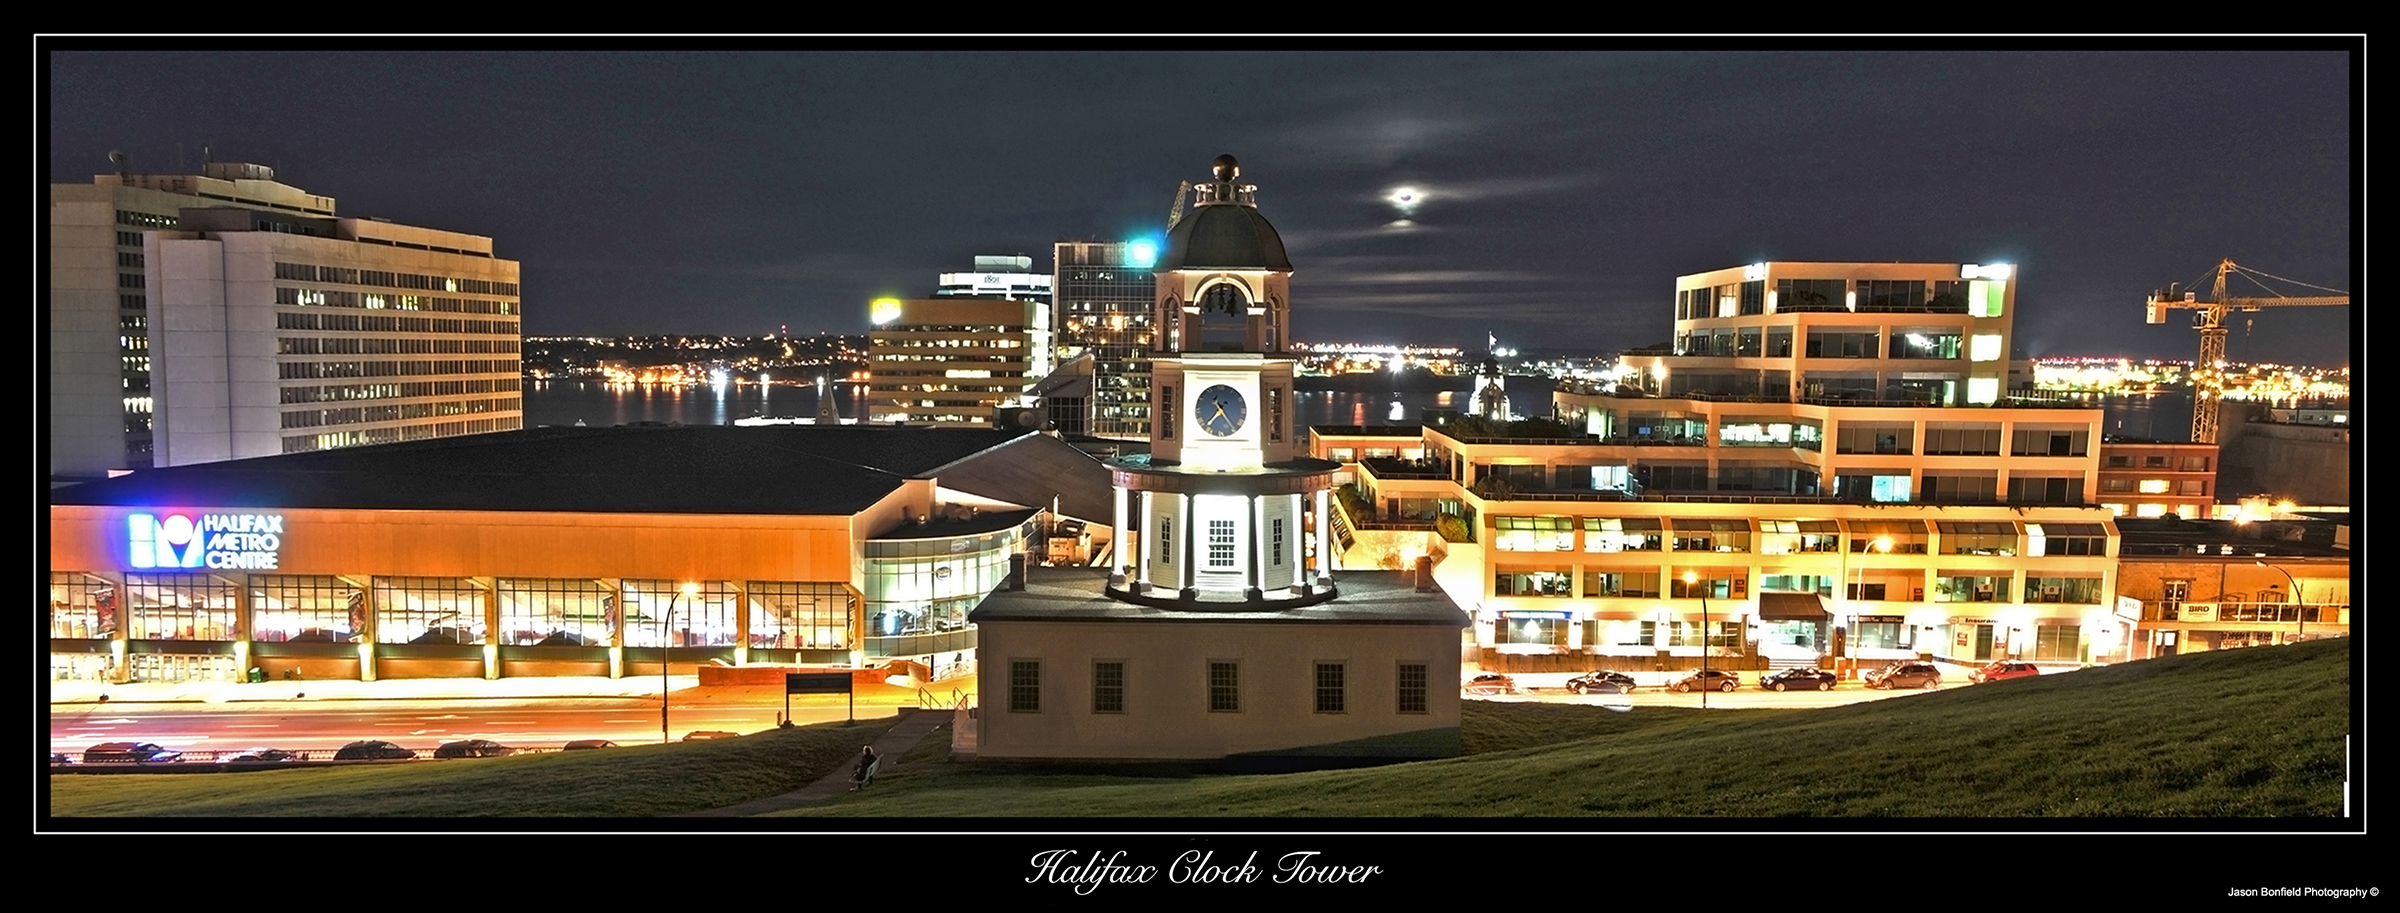 Panoramic nighttime landscape picture of Halifax Citadel clock tower and the moon behind clouds in Halifax, Nova Scotia, Canada.